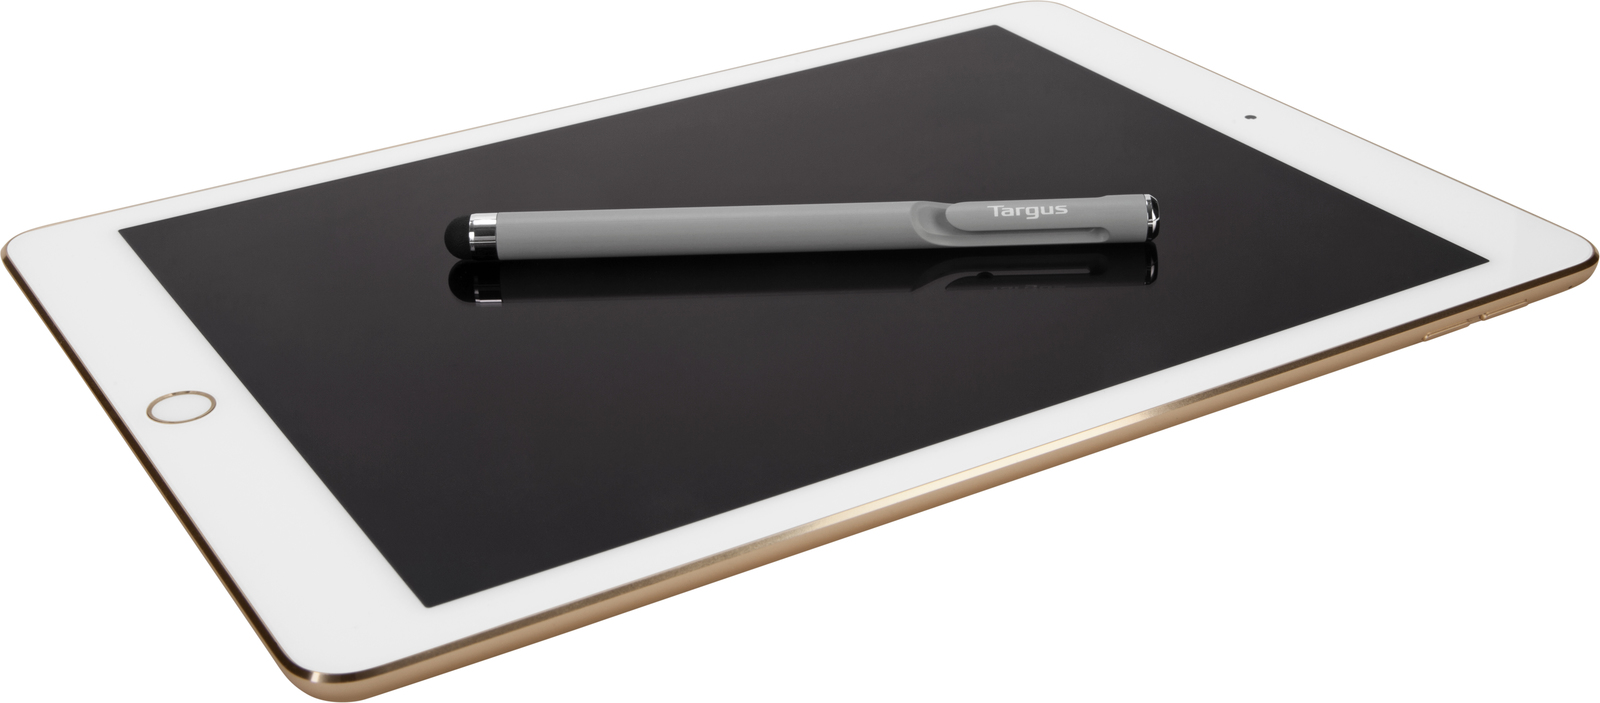 Targus: Standard Stylus with Embedded Clip - Grey image